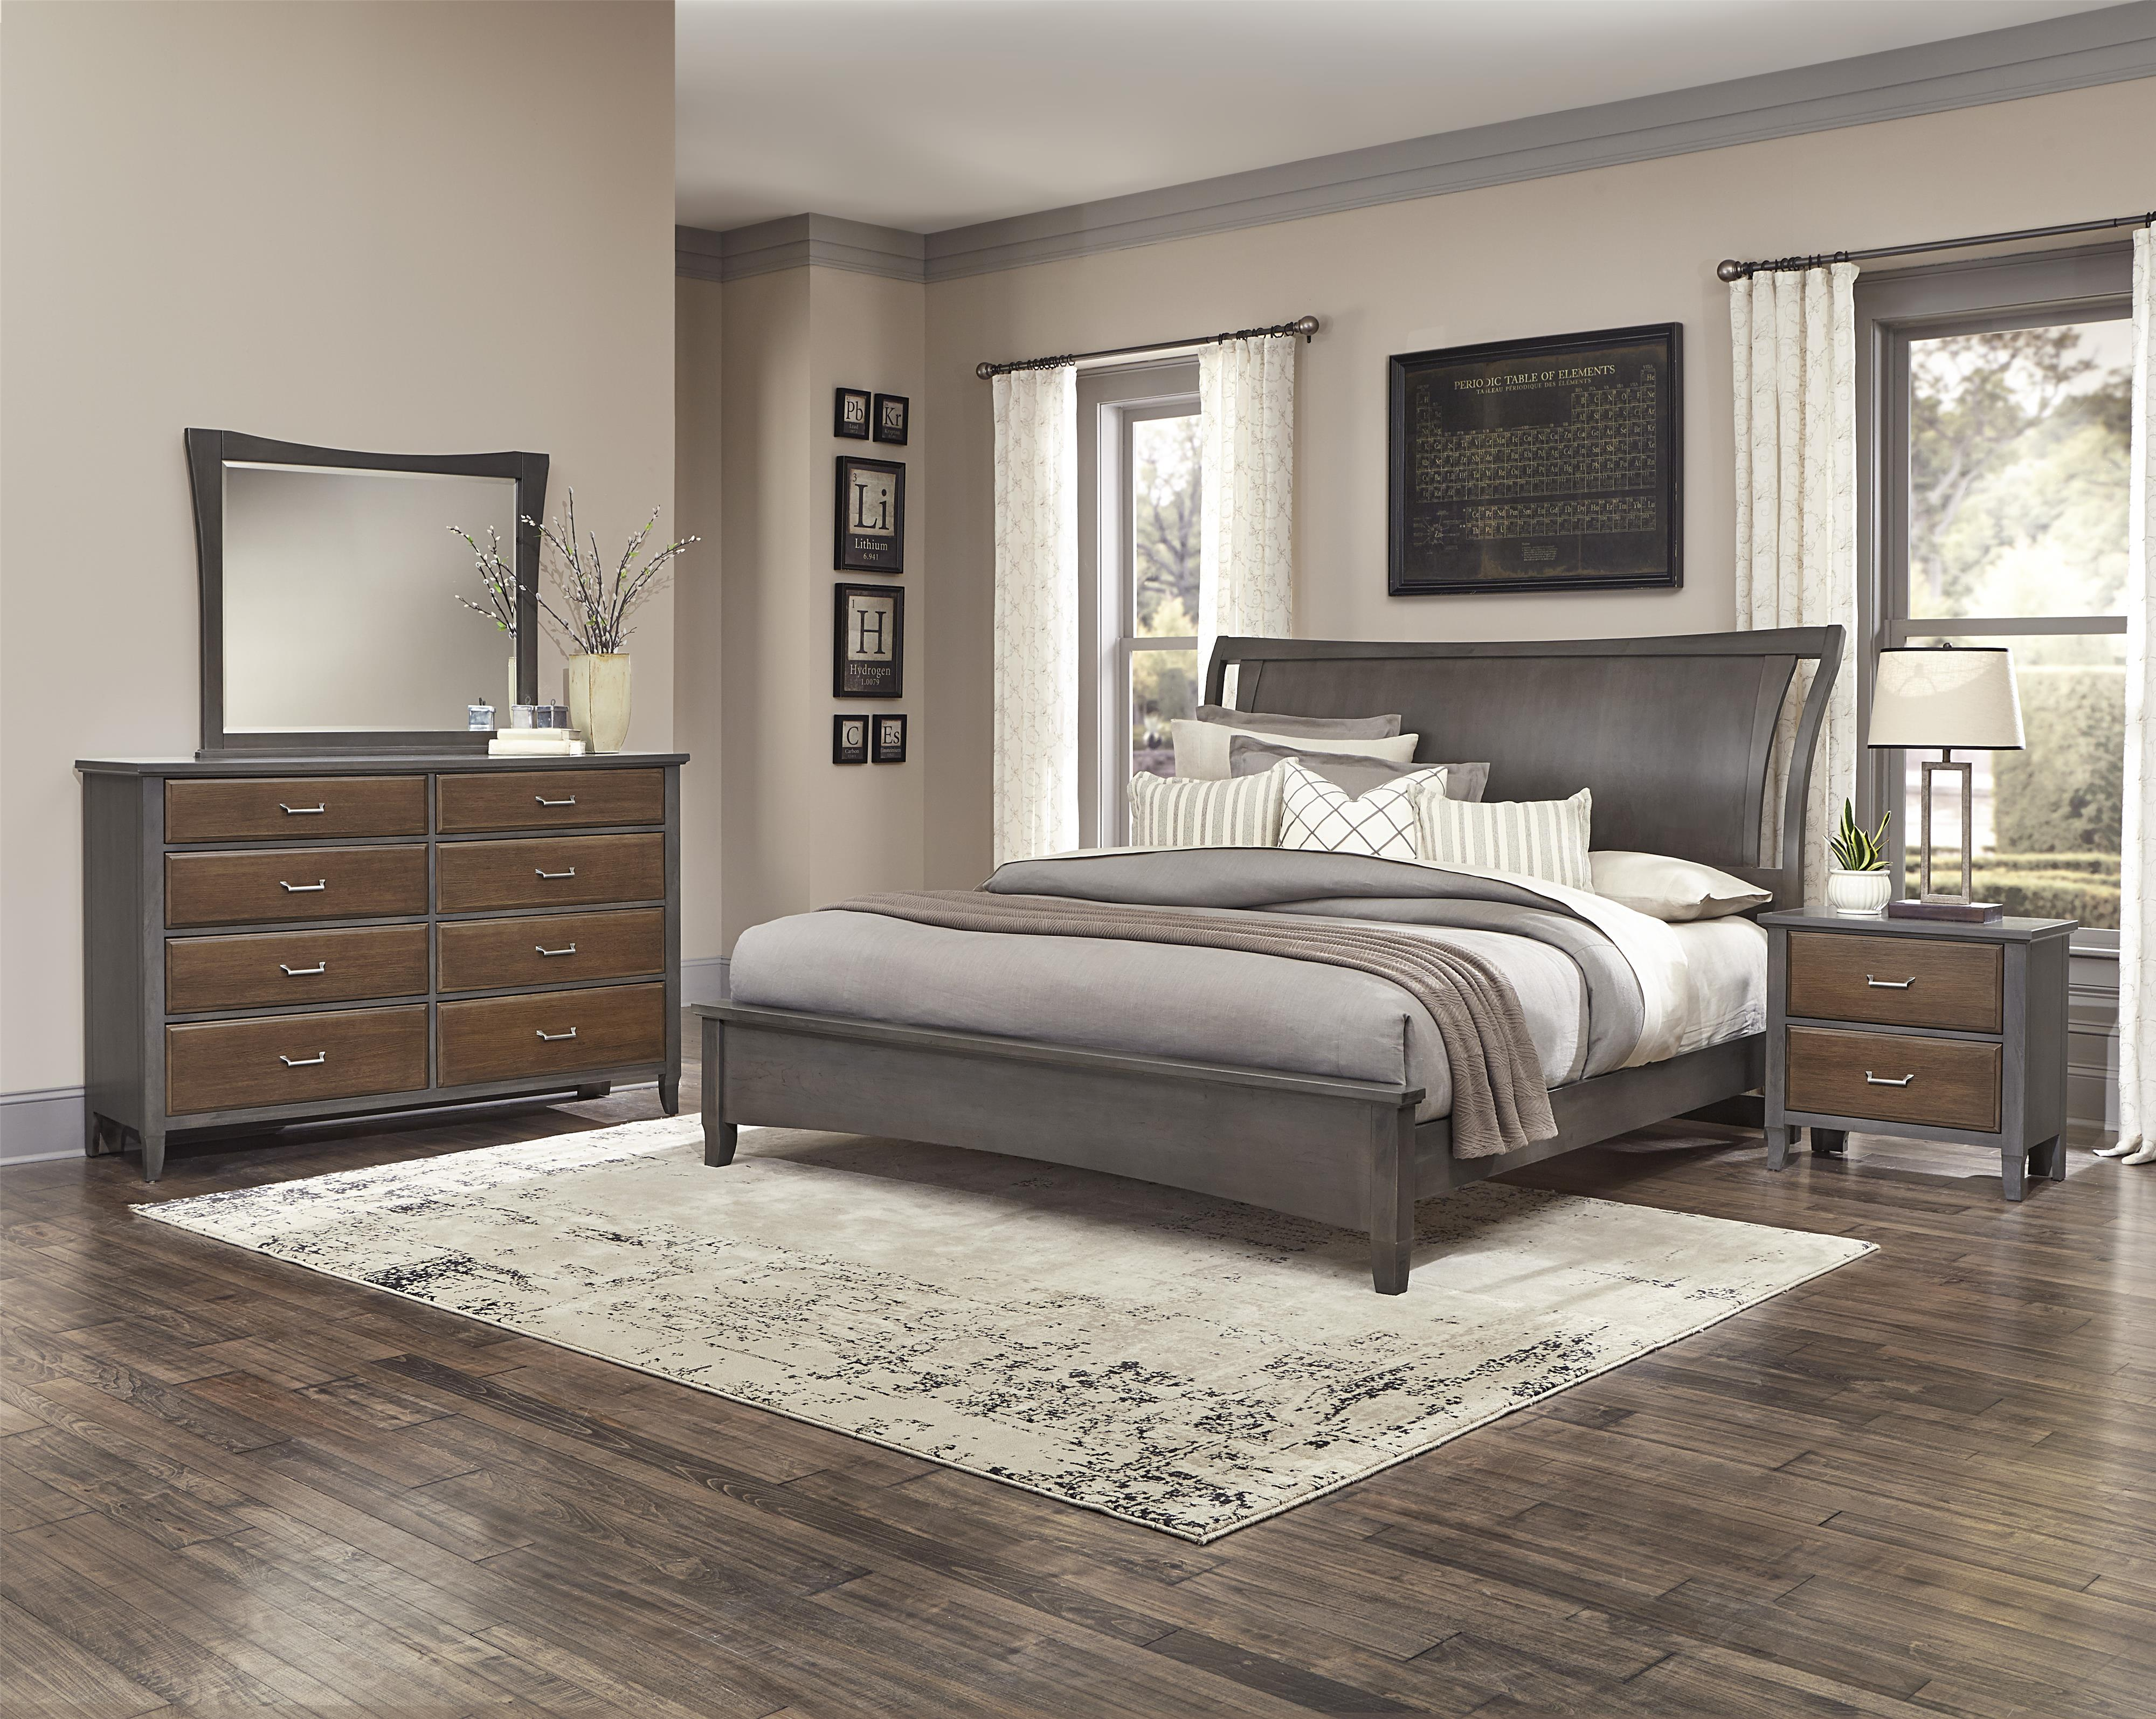 Vaughan Bassett Commentary Queen Bedroom Group - Item Number: 394 Q Bedroom Group 5